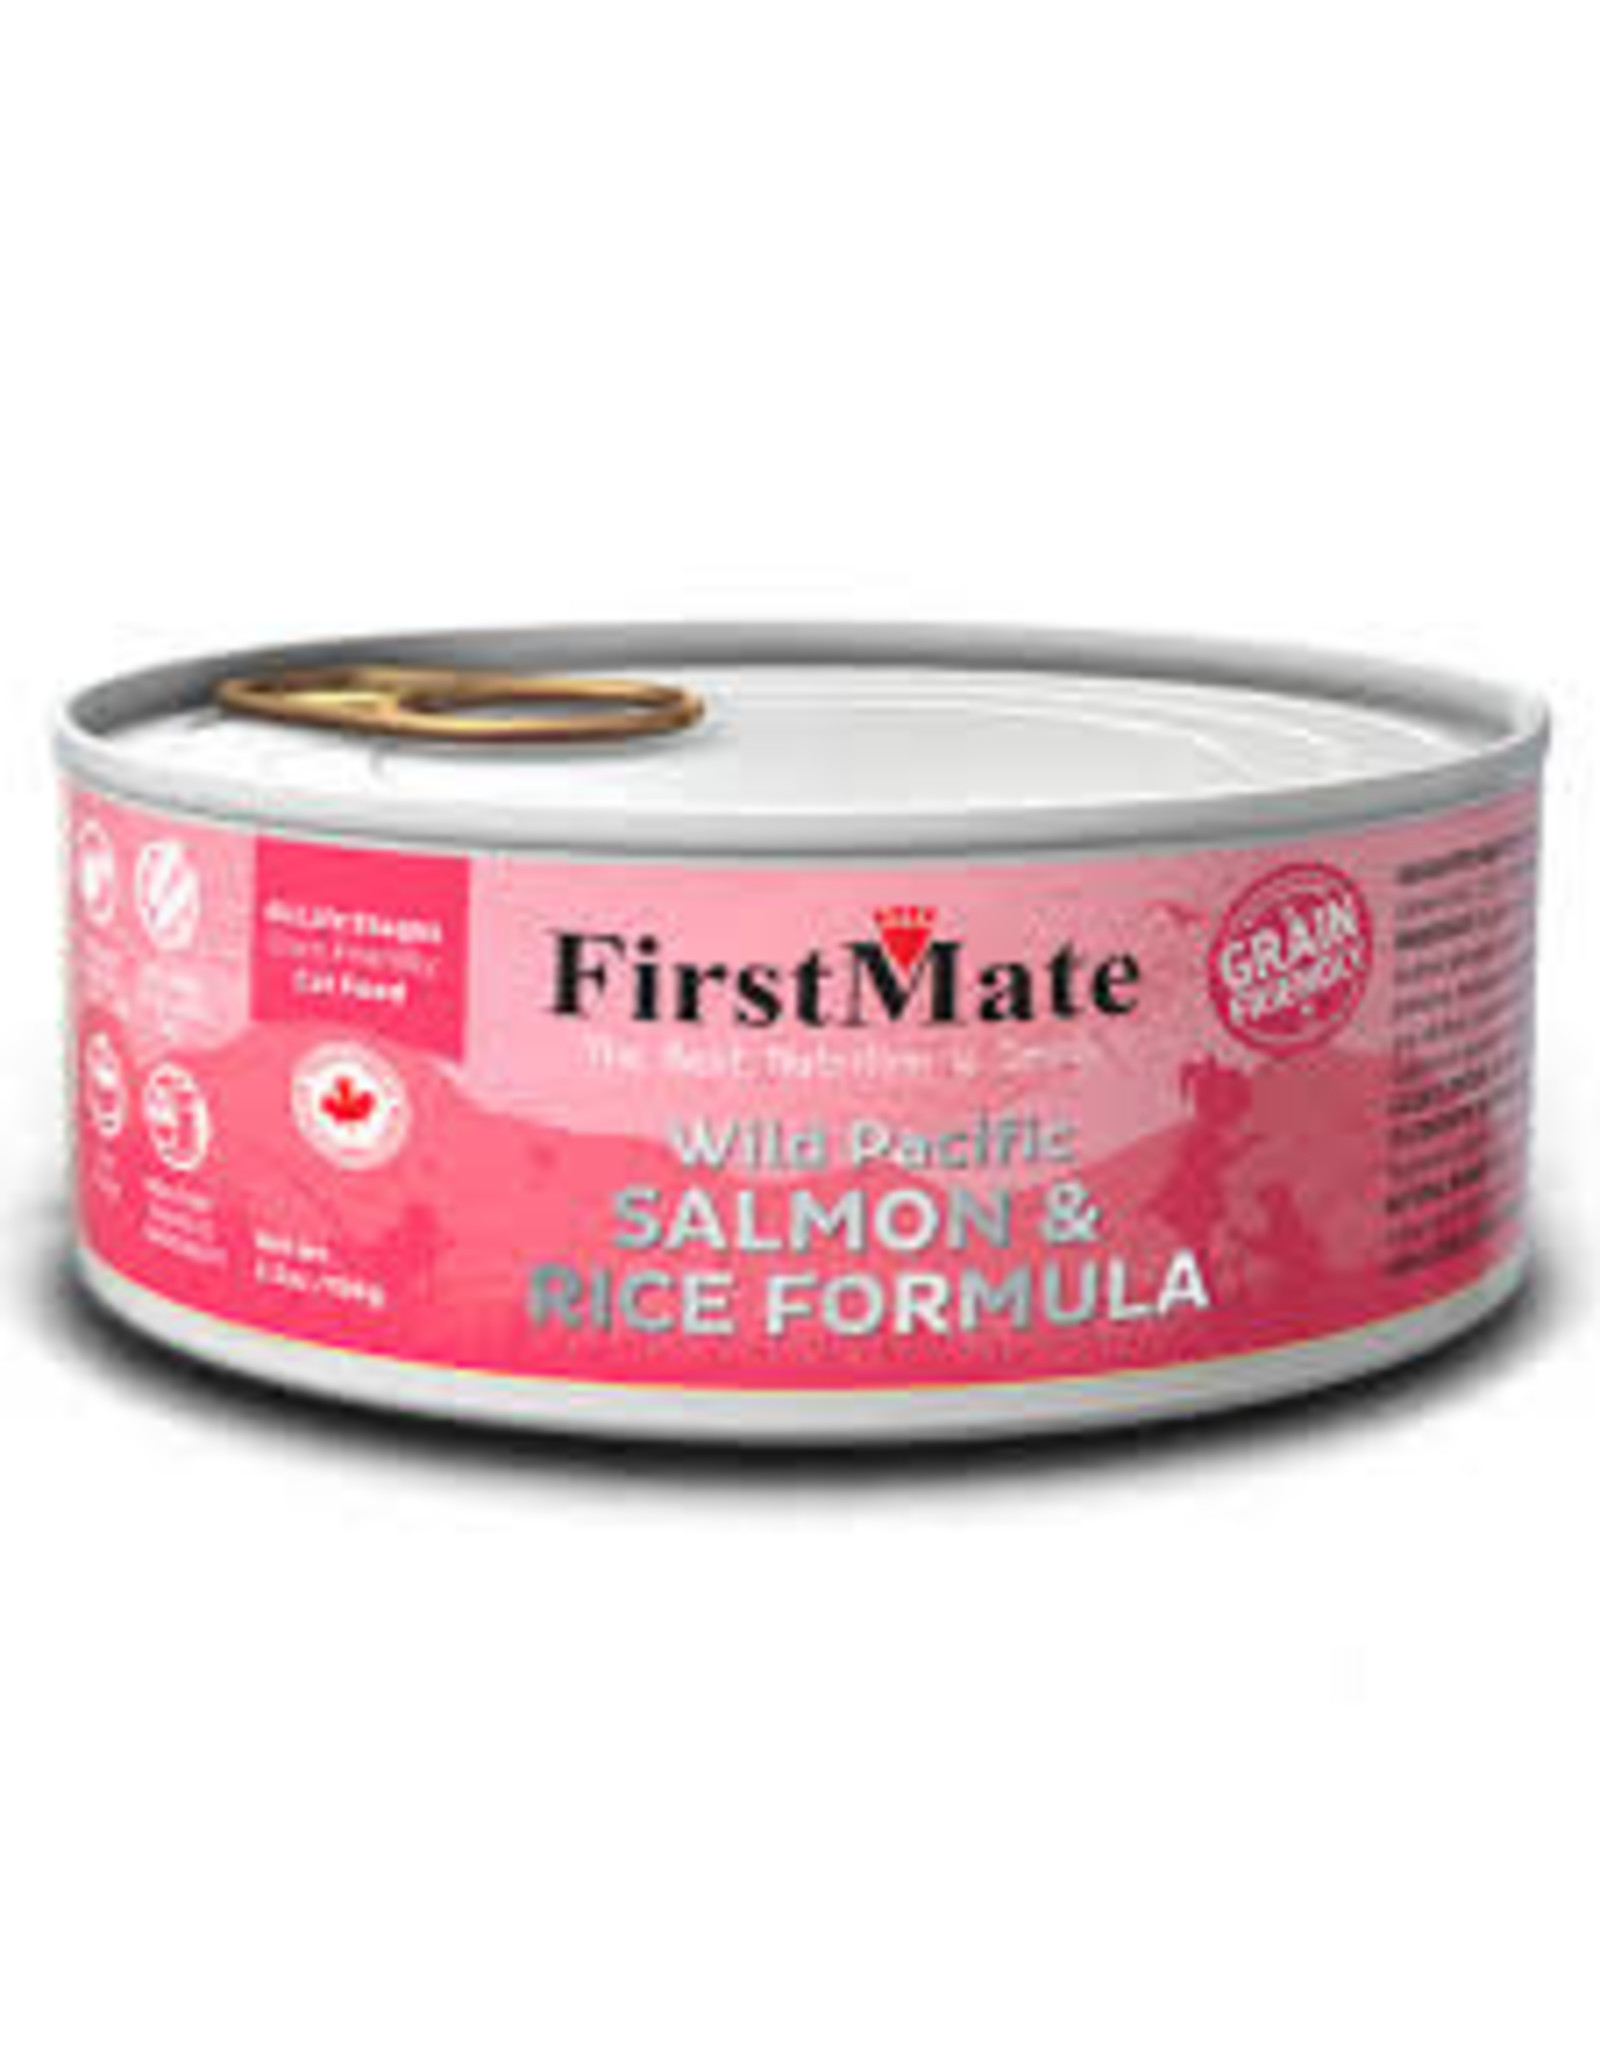 FirstMate FirstMate Cat - Salmon 5.5oz